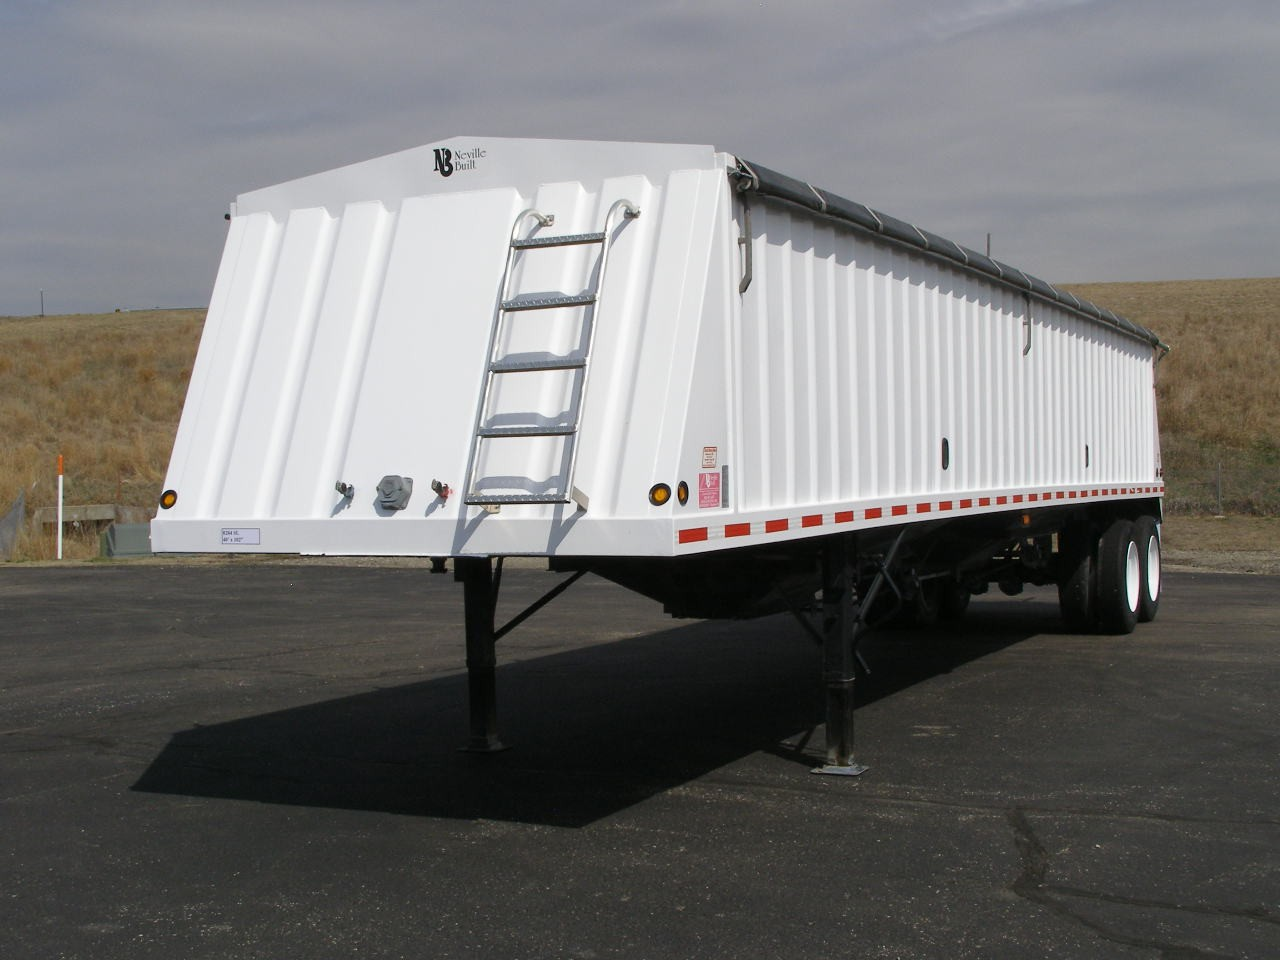 Used, 2010, Neville Built, INNSV 40' Steel Hopper  SOLD, Hoppers / Wagons